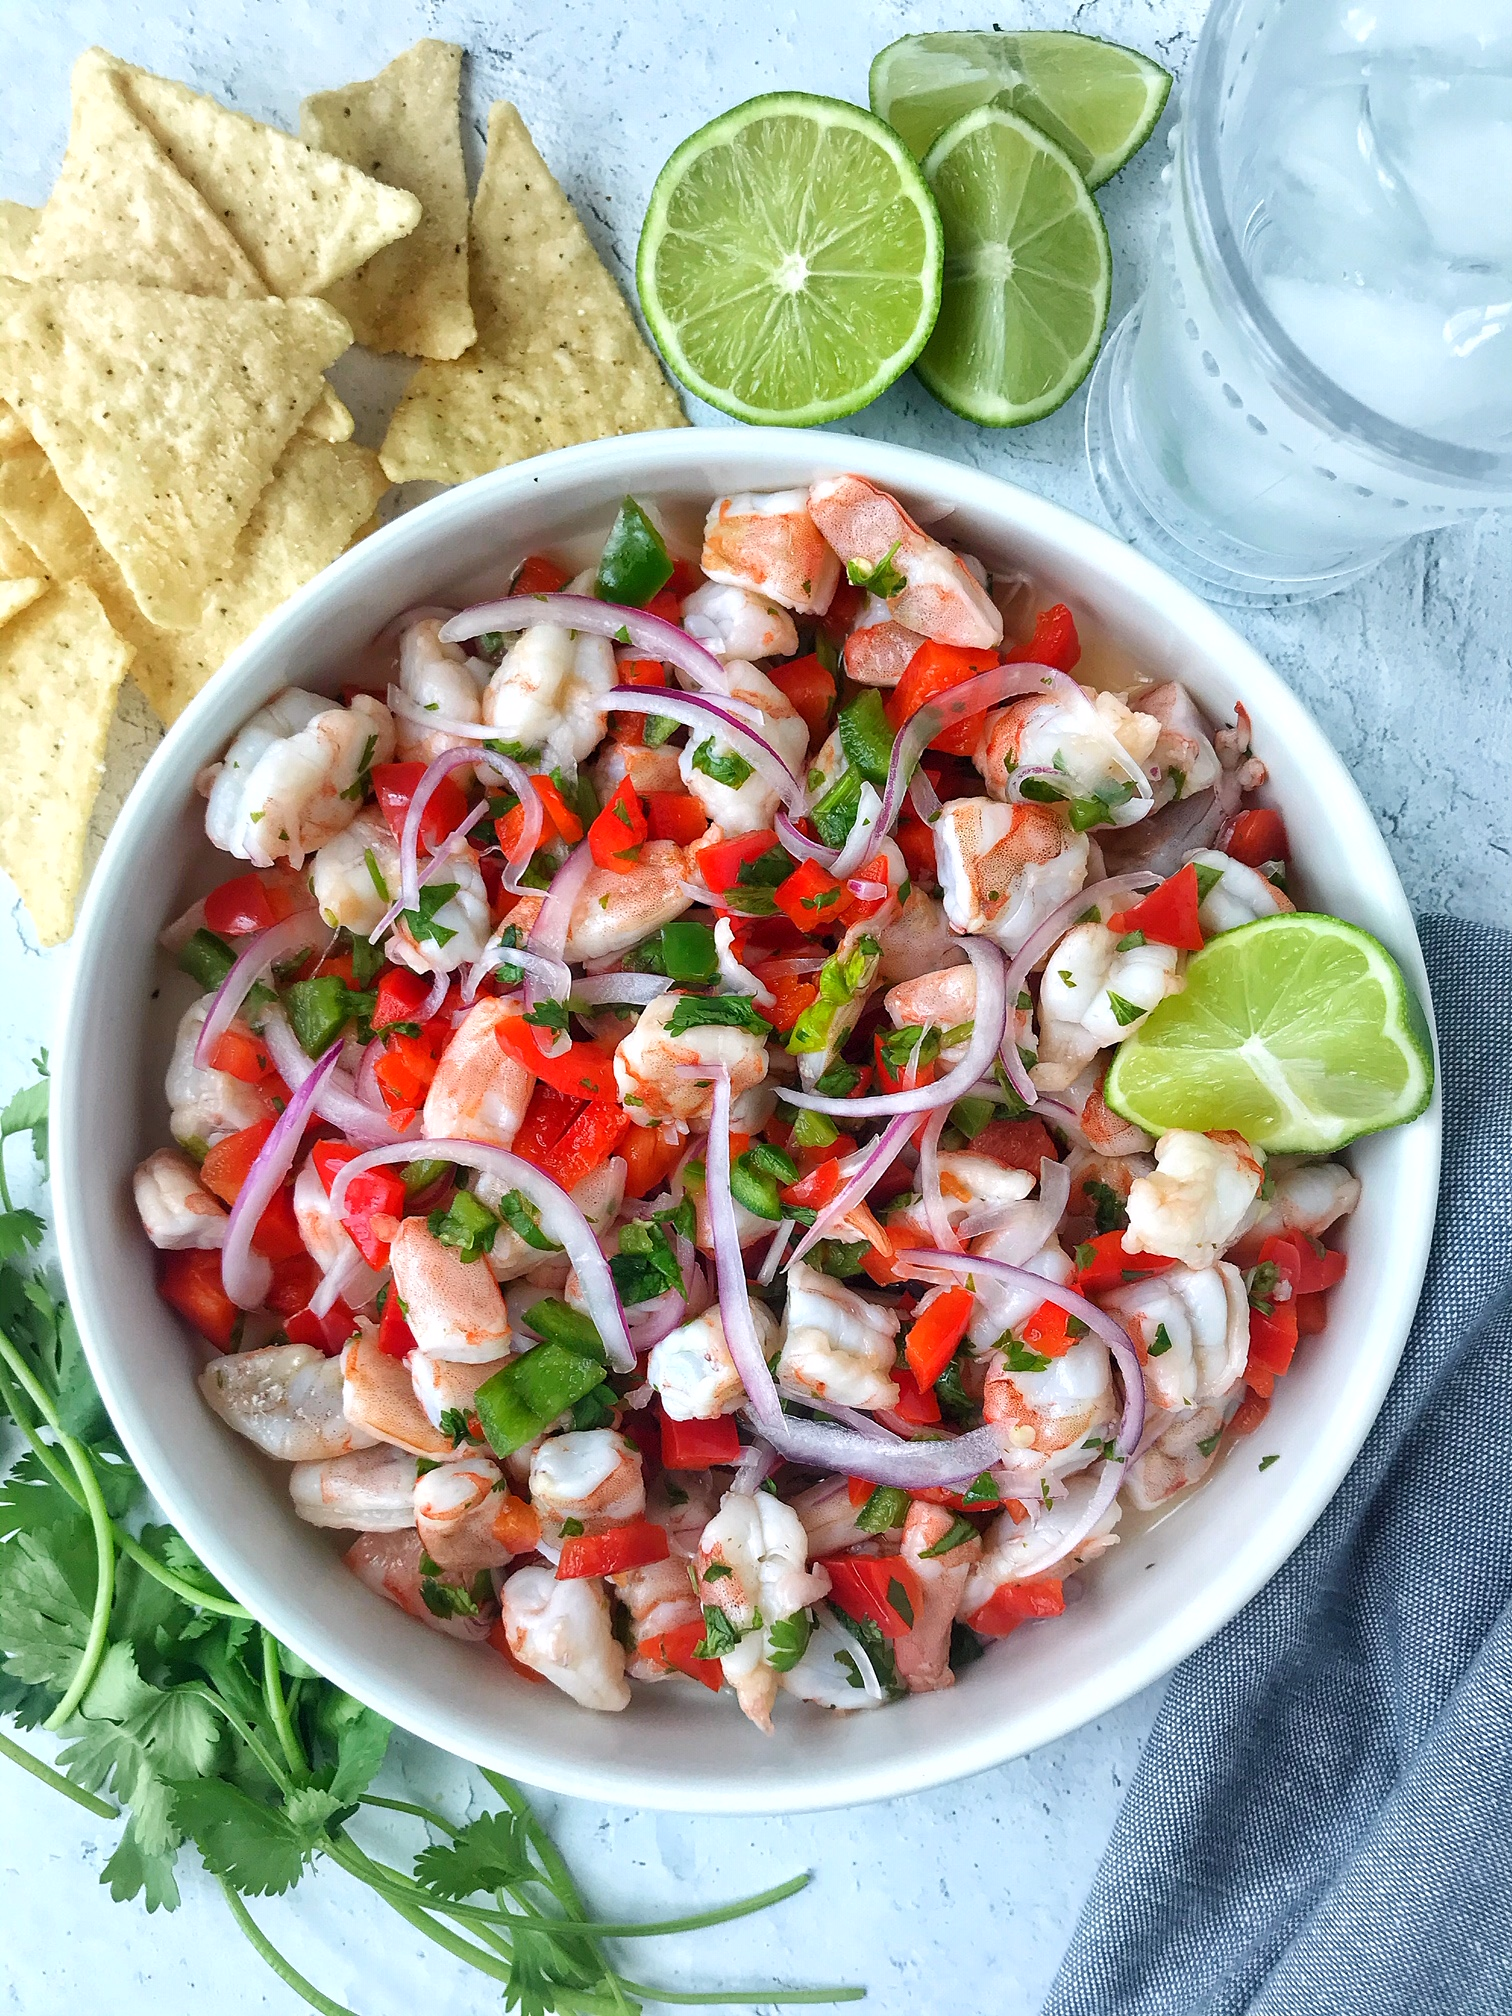 White bowl with shrimp ceviche with red peppers, cilantro, red onions, and lime. Tortilla chips, lime, and cilantro garnish